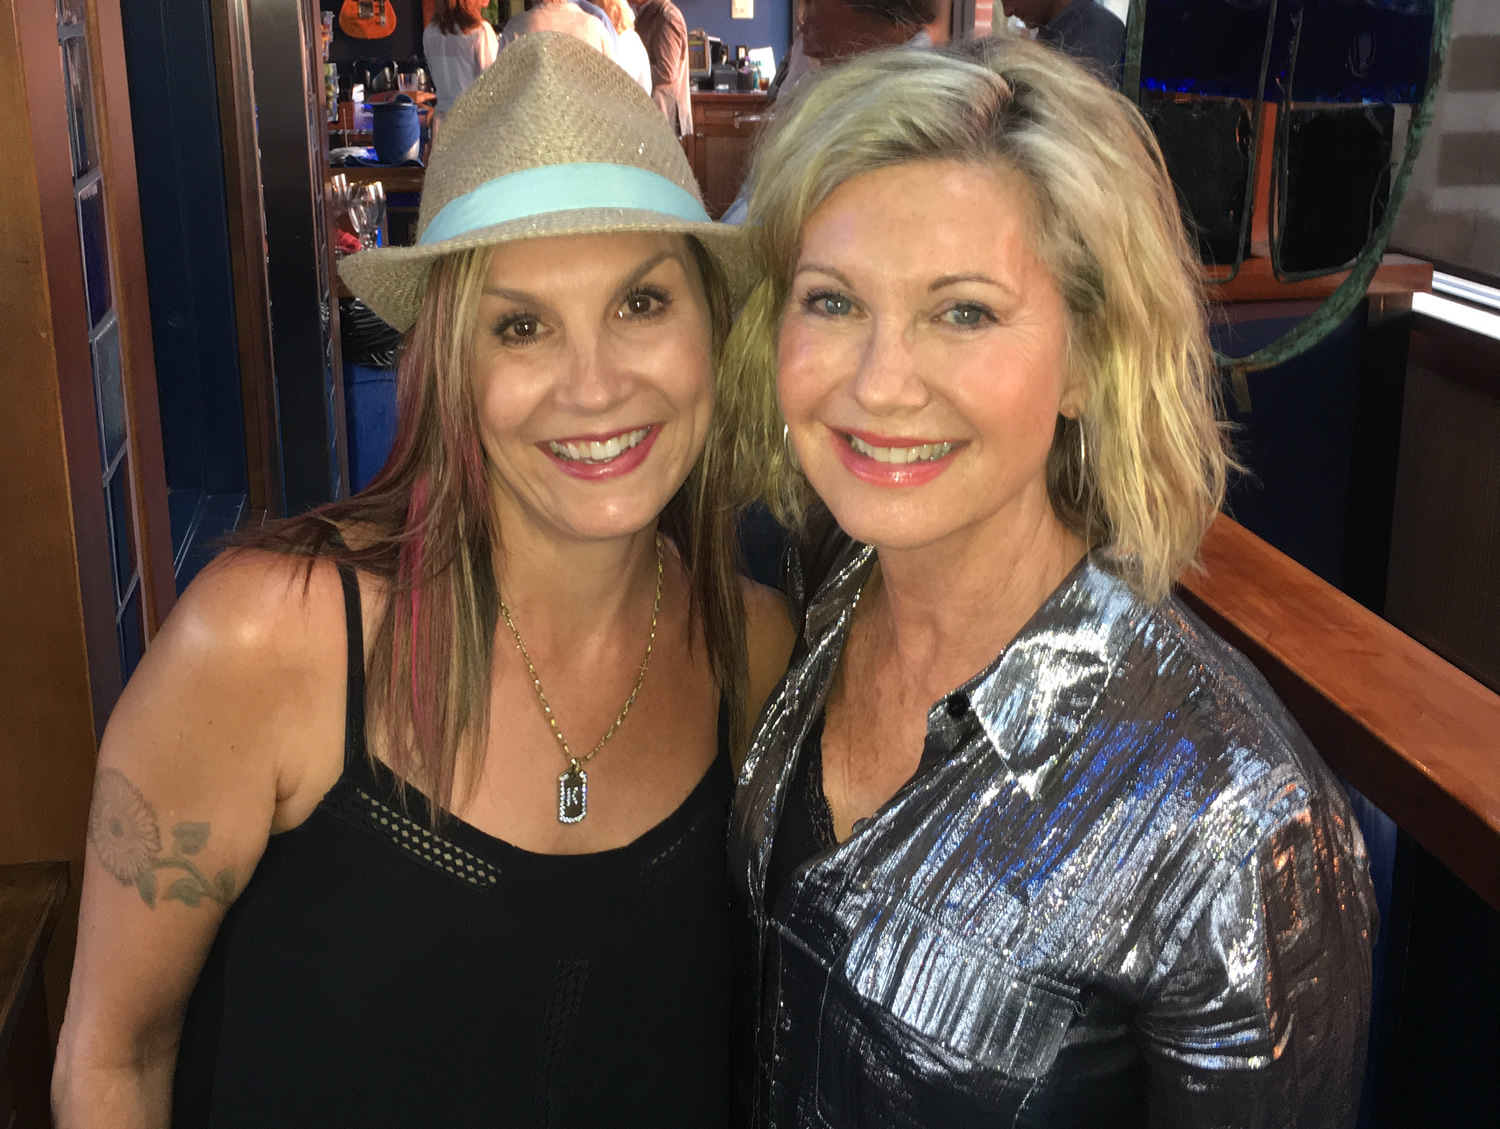 Karen Eden with Olivia Newton-John at W20 at the Watermark, Thursday, August 4, 2016.